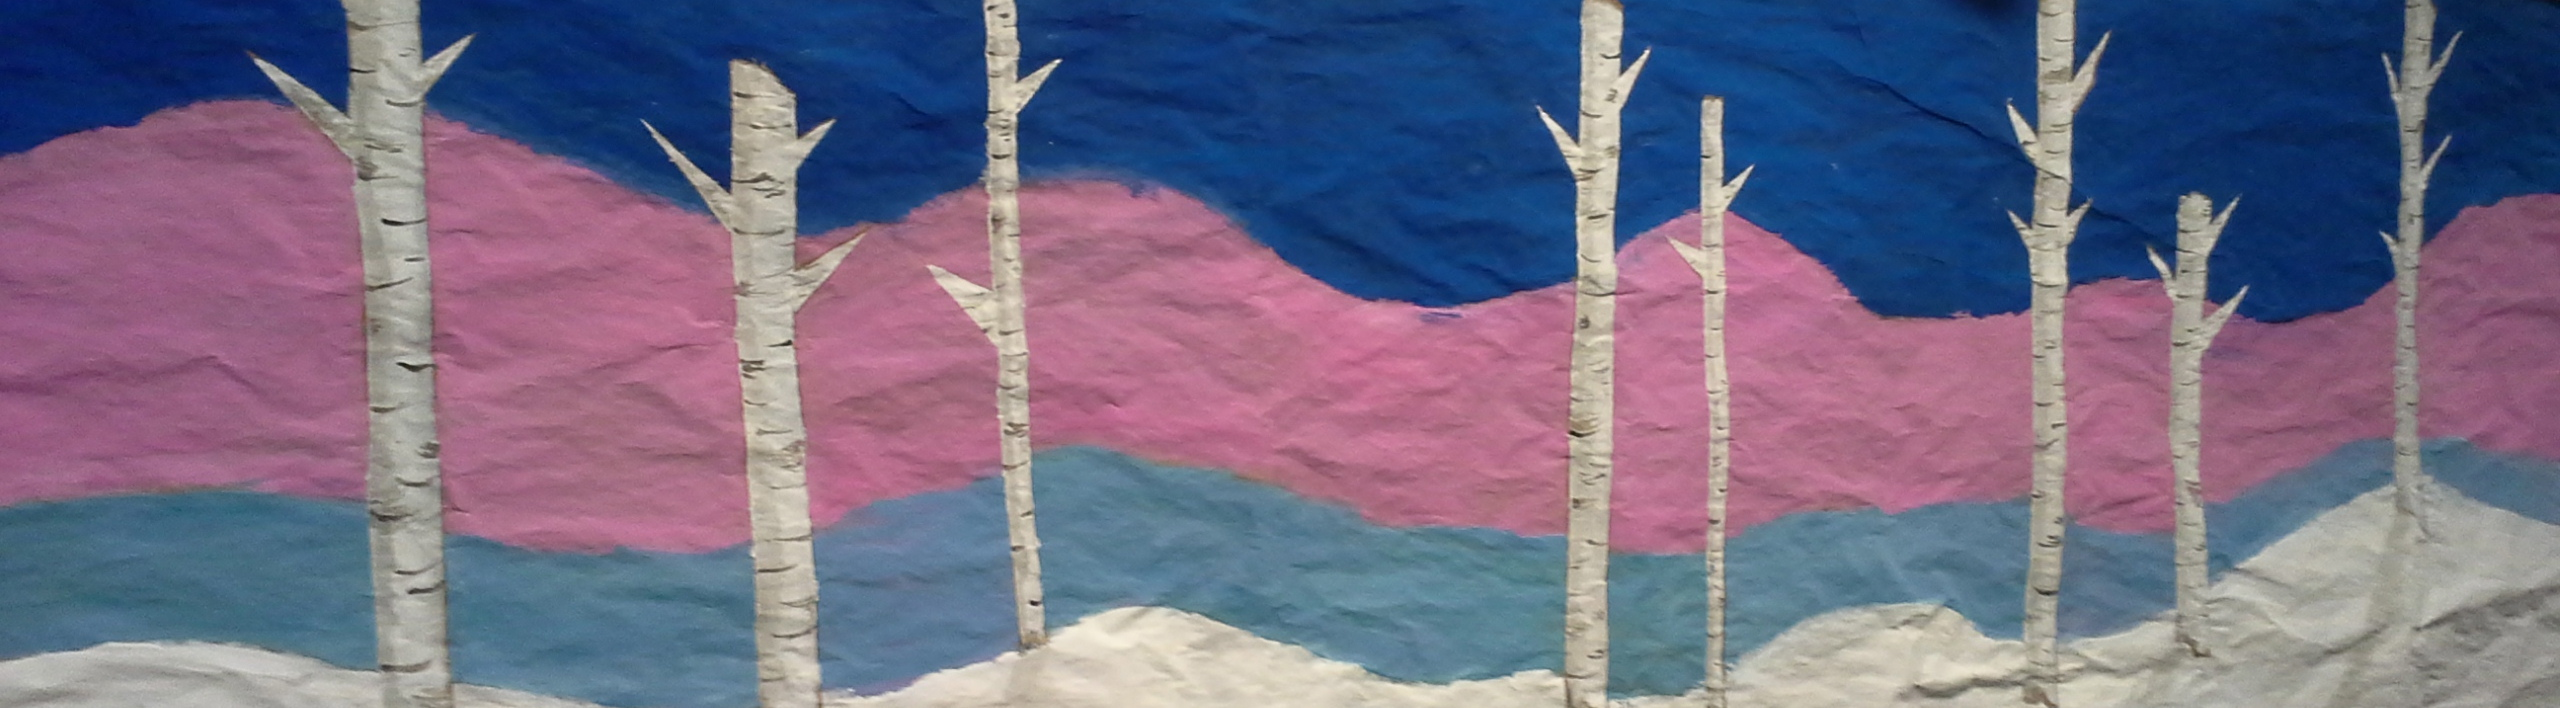 Birch Tree Mural crop